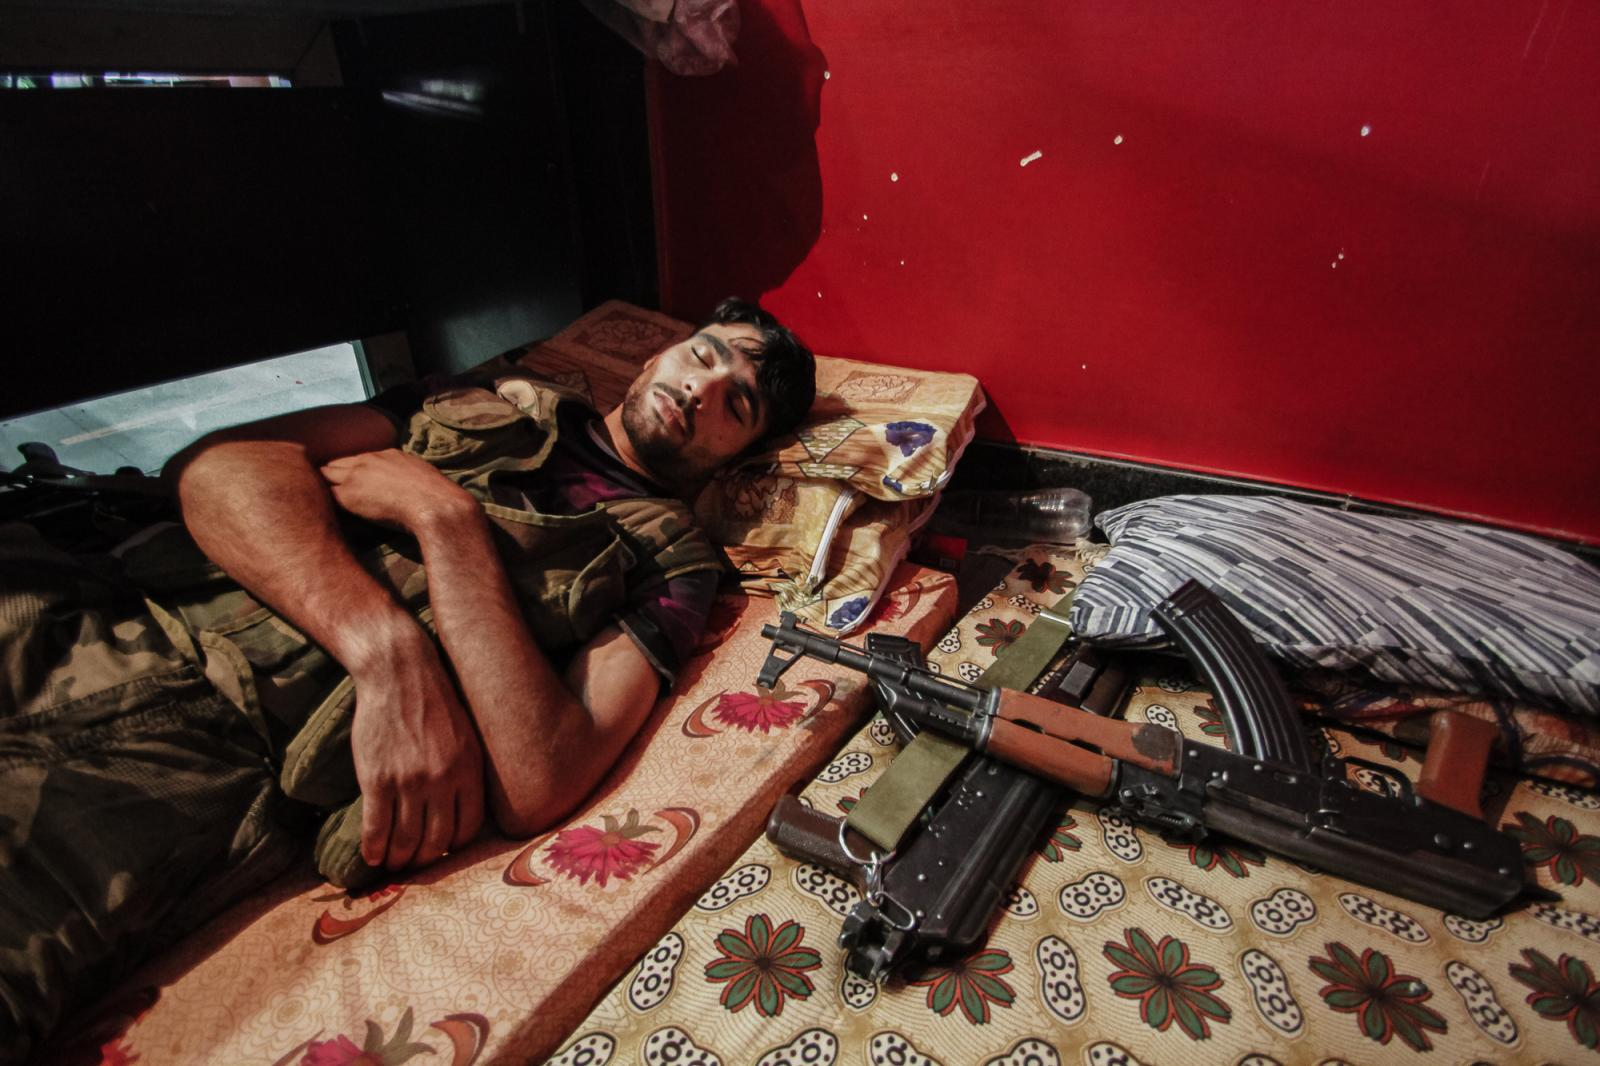 A member of the Free Syrian Army sleeps in a business in Aleppo that has turned into a makeshift headquarters for the FSA in between fighting Assad's forces on August 22, 2012.